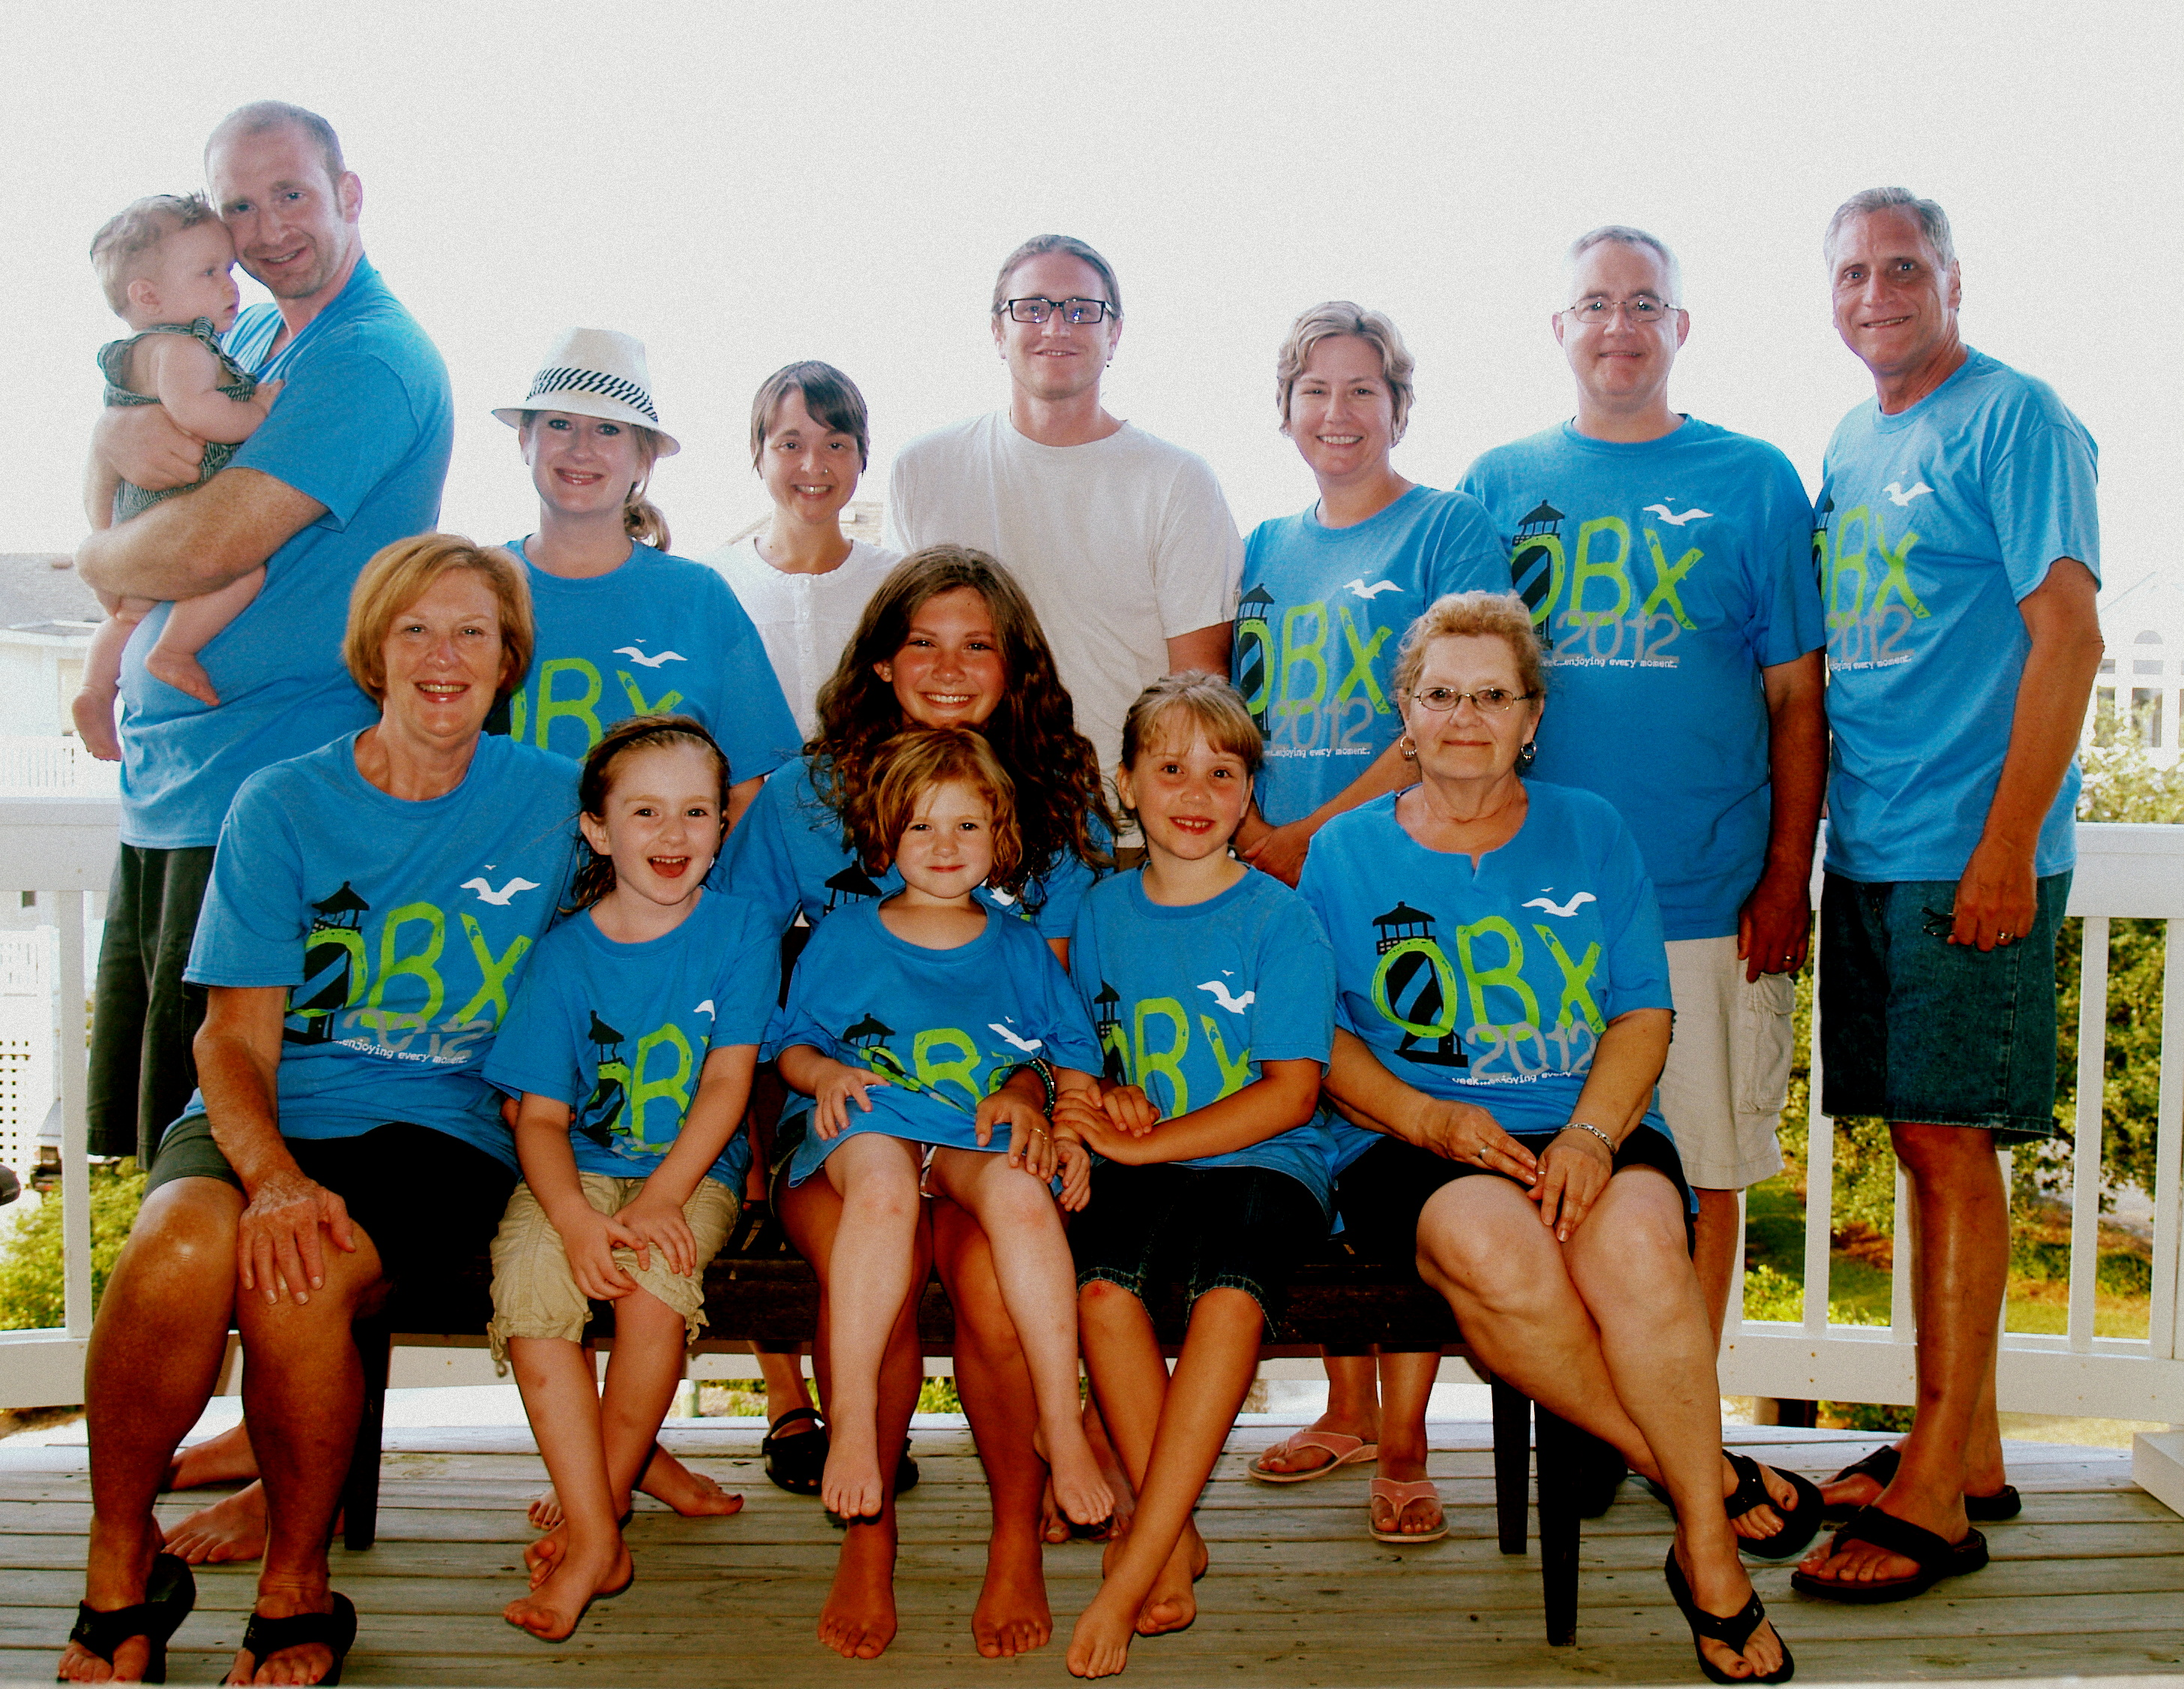 Custom T Shirts For Outer Banks Family Vacation Shirt